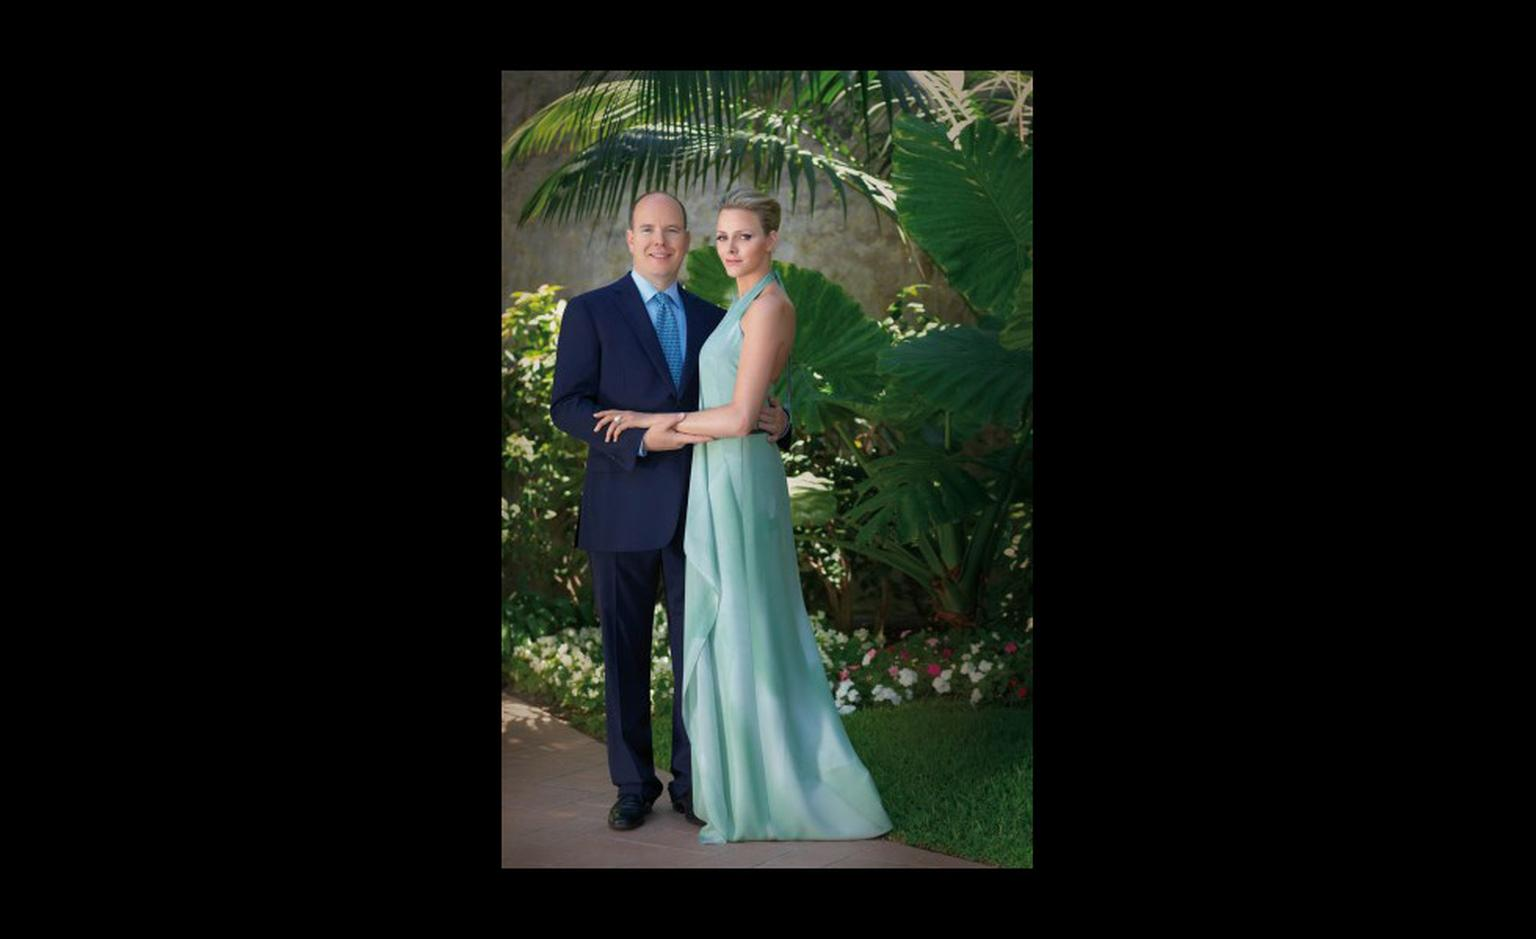 Official wedding photograph of Prince Albert II with Charlene Wittstock. Photo: Prince's Palace of Monaco